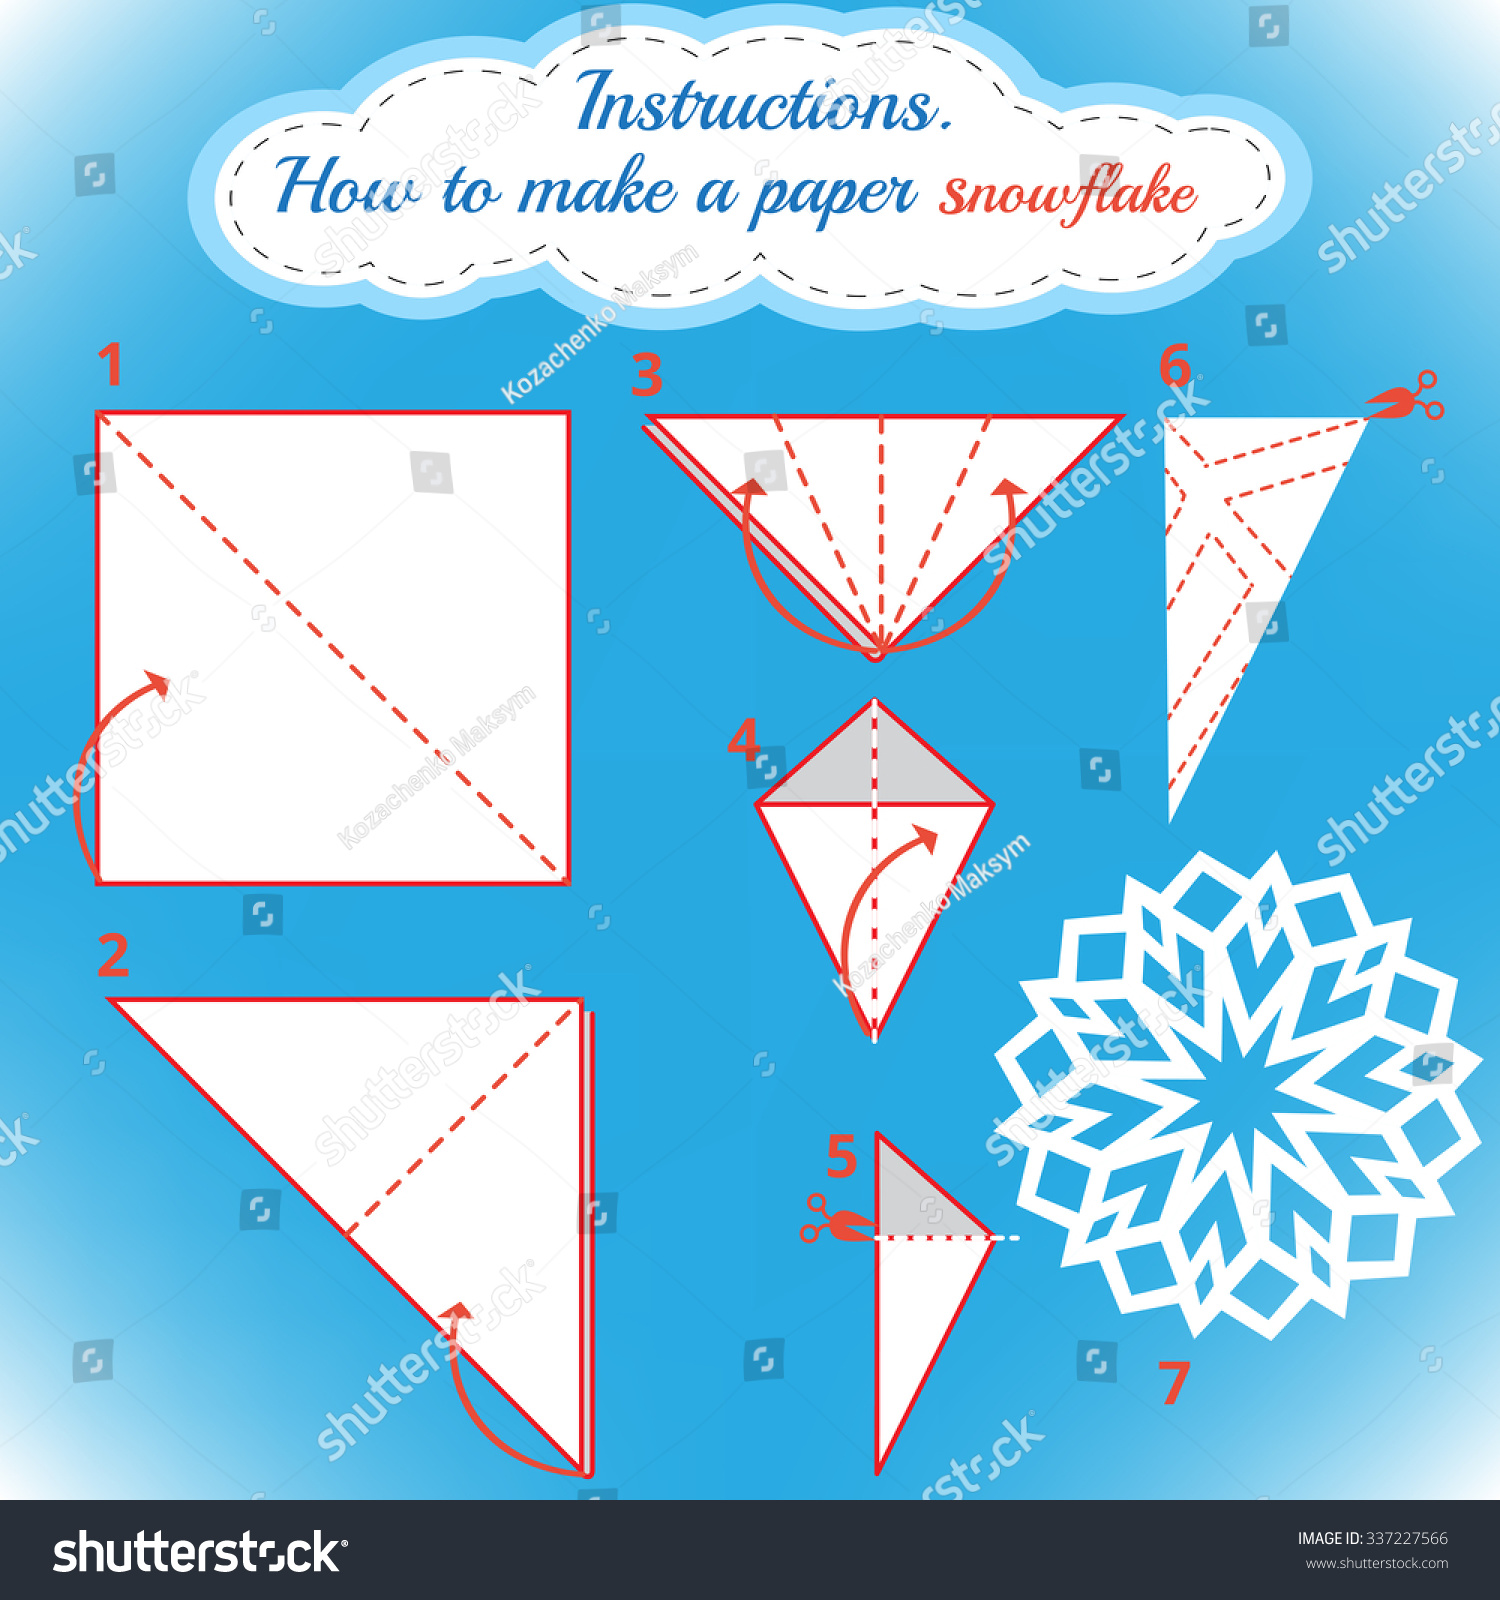 Easy paper snowflakes instructions